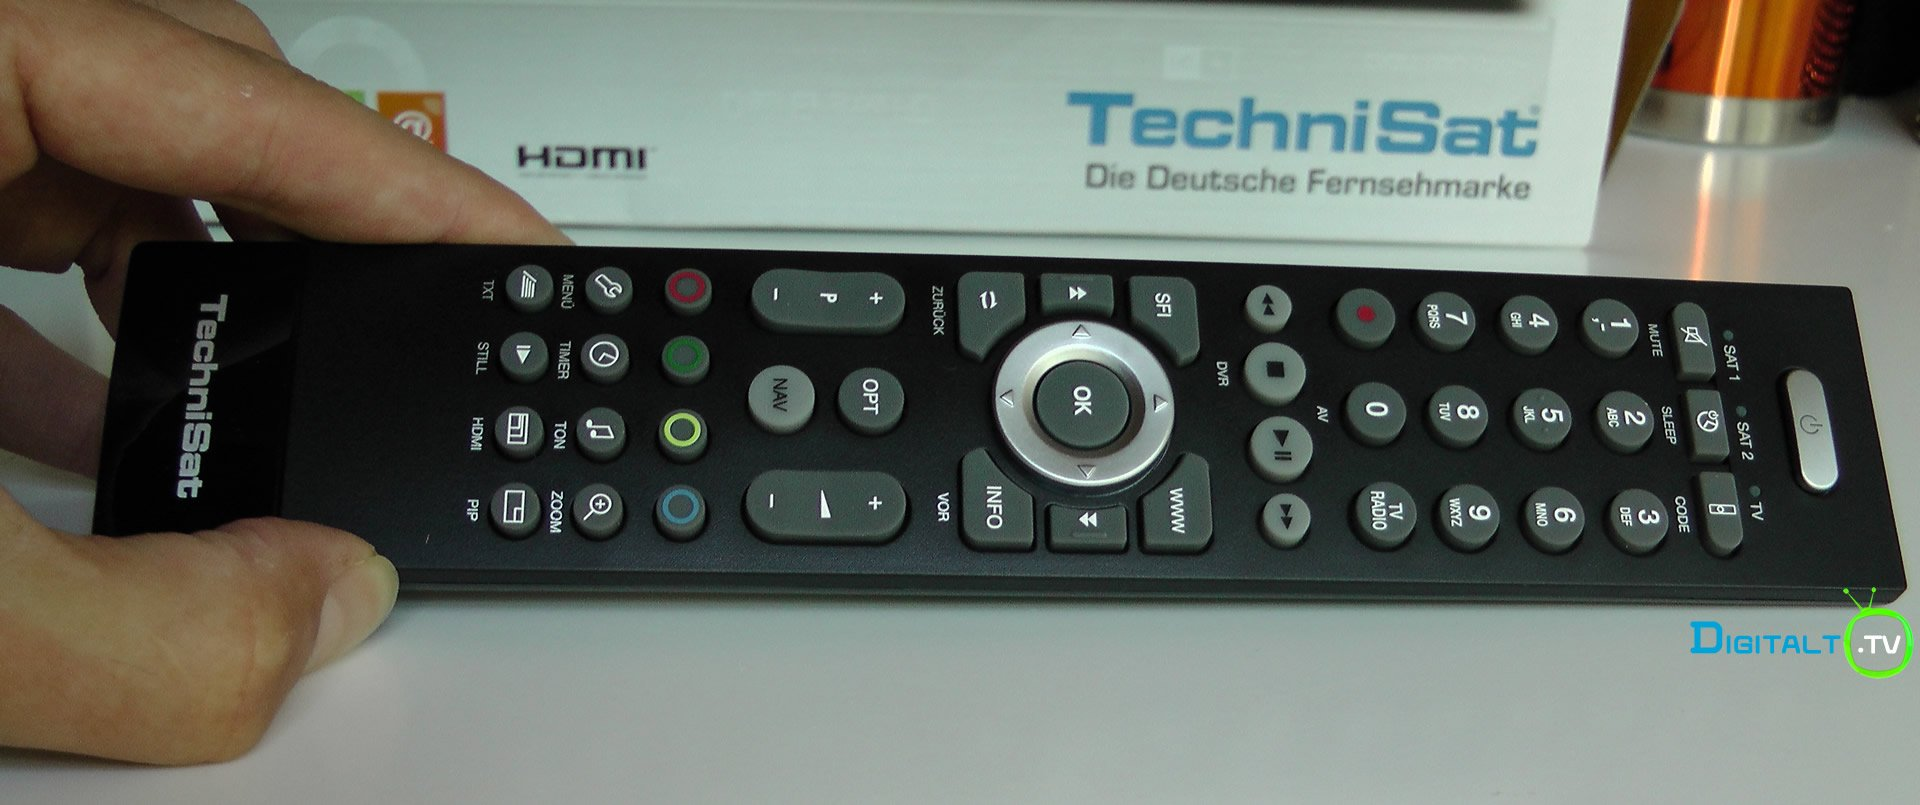 technisat-isio-stc-uhd-remote